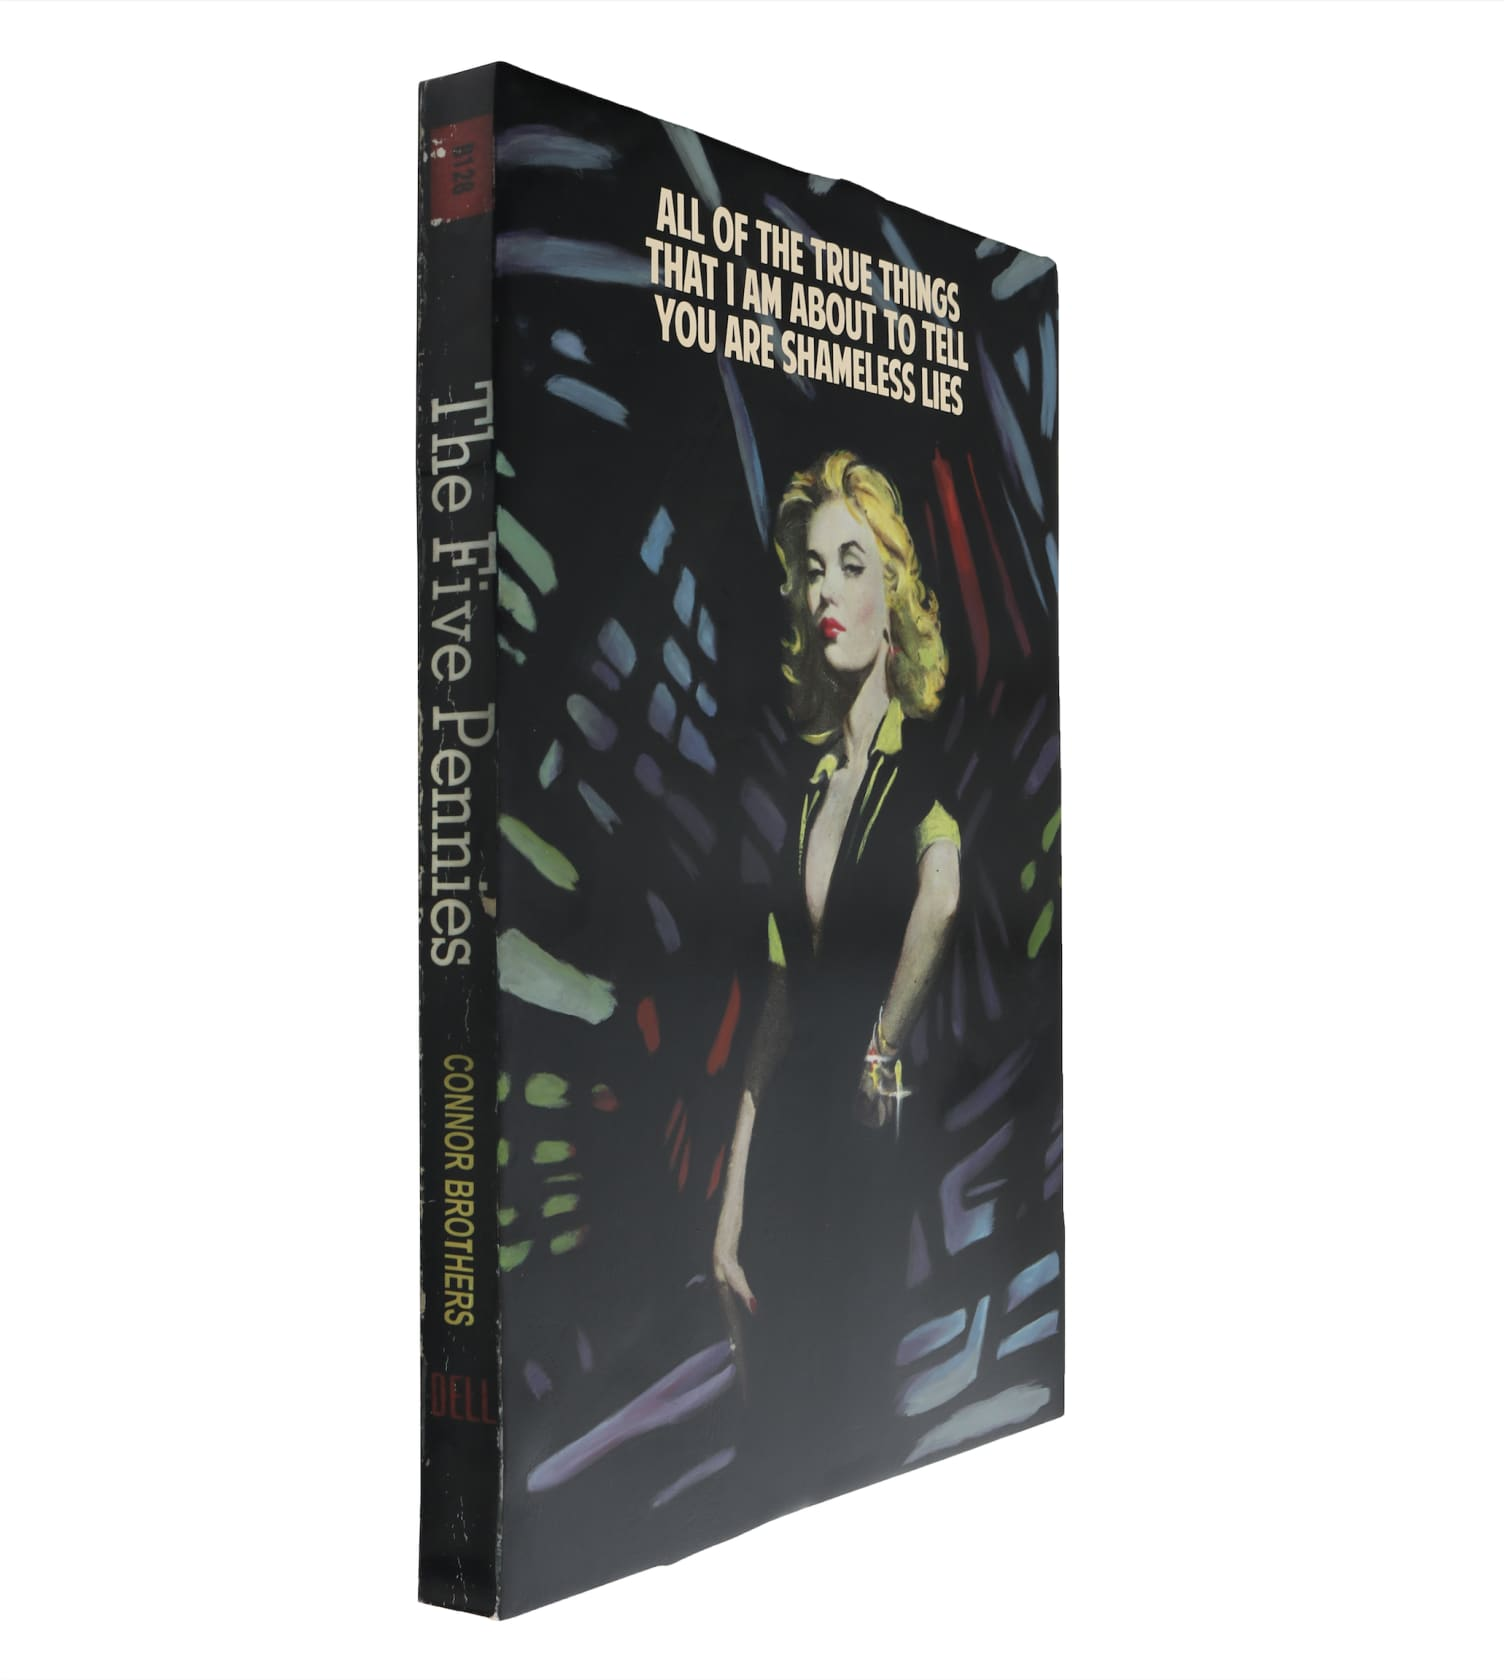 the connor brothers Shameless Lies Hand painted wooden book with silkscreen